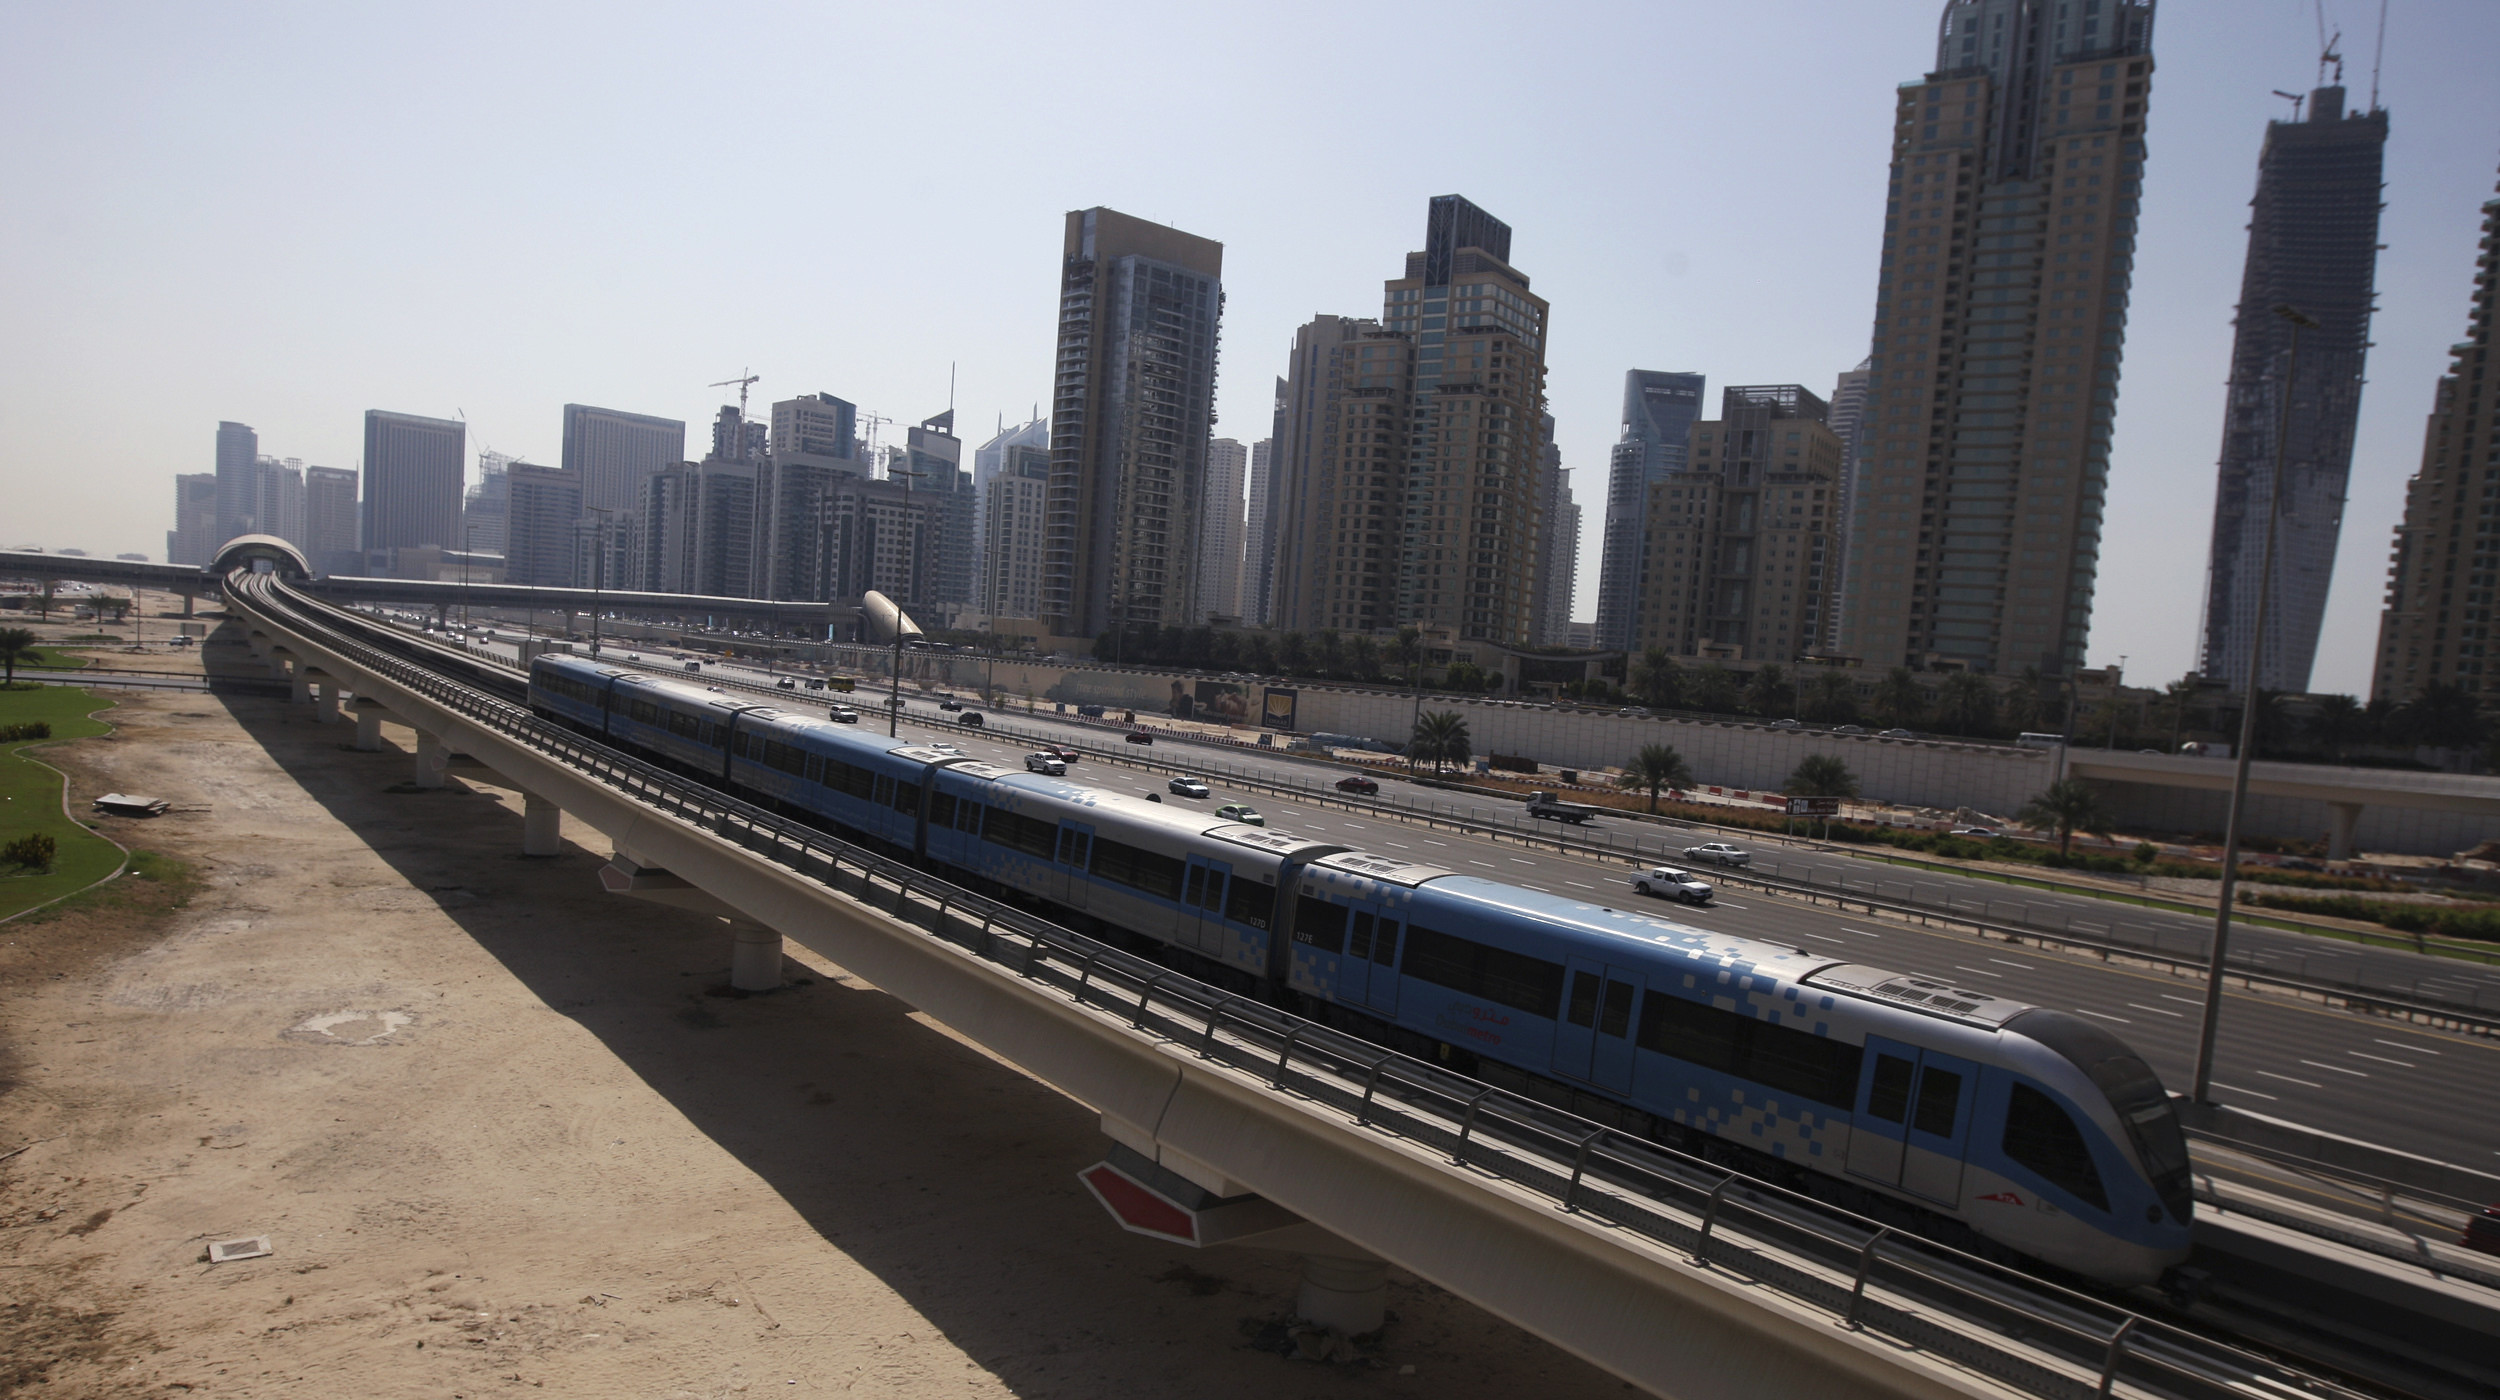 A Dubai Metro train runs past Sheikh Zayed road in Dubai September 13, 2010. State-owned conglomerate Dubai World reached a formal deal to restructure almost $25 billion of liabilities, partly easing recently heightened concerns over the Gulf emirate's debt woes. Dubai World reached an agreement with over 99 percent of its creditors by value to restructure around $24.9 billion of liabilities, the Dubai government said. REUTERS/Mosab Omar (UNITED ARAB EMIRATES - Tags: BUSINESS TRANSPORT) - RTR2IA86